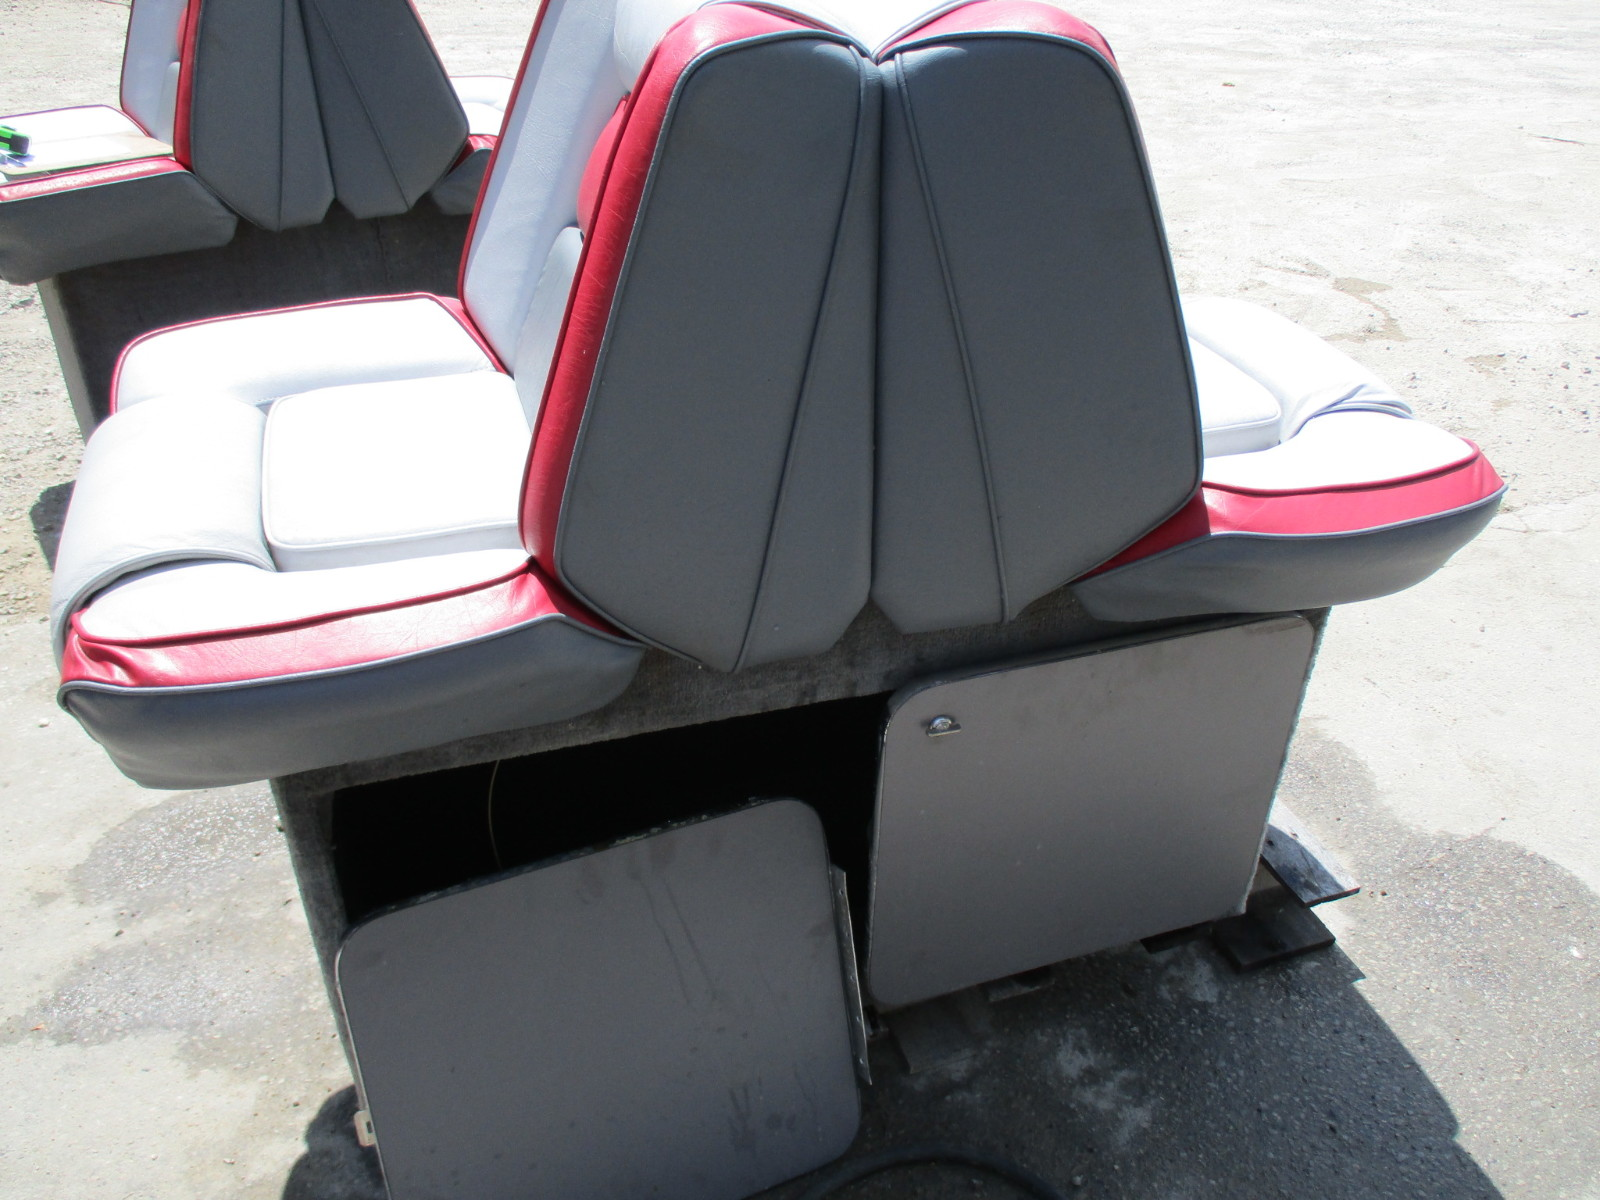 Boat Seats: Four Winns Boat Seats